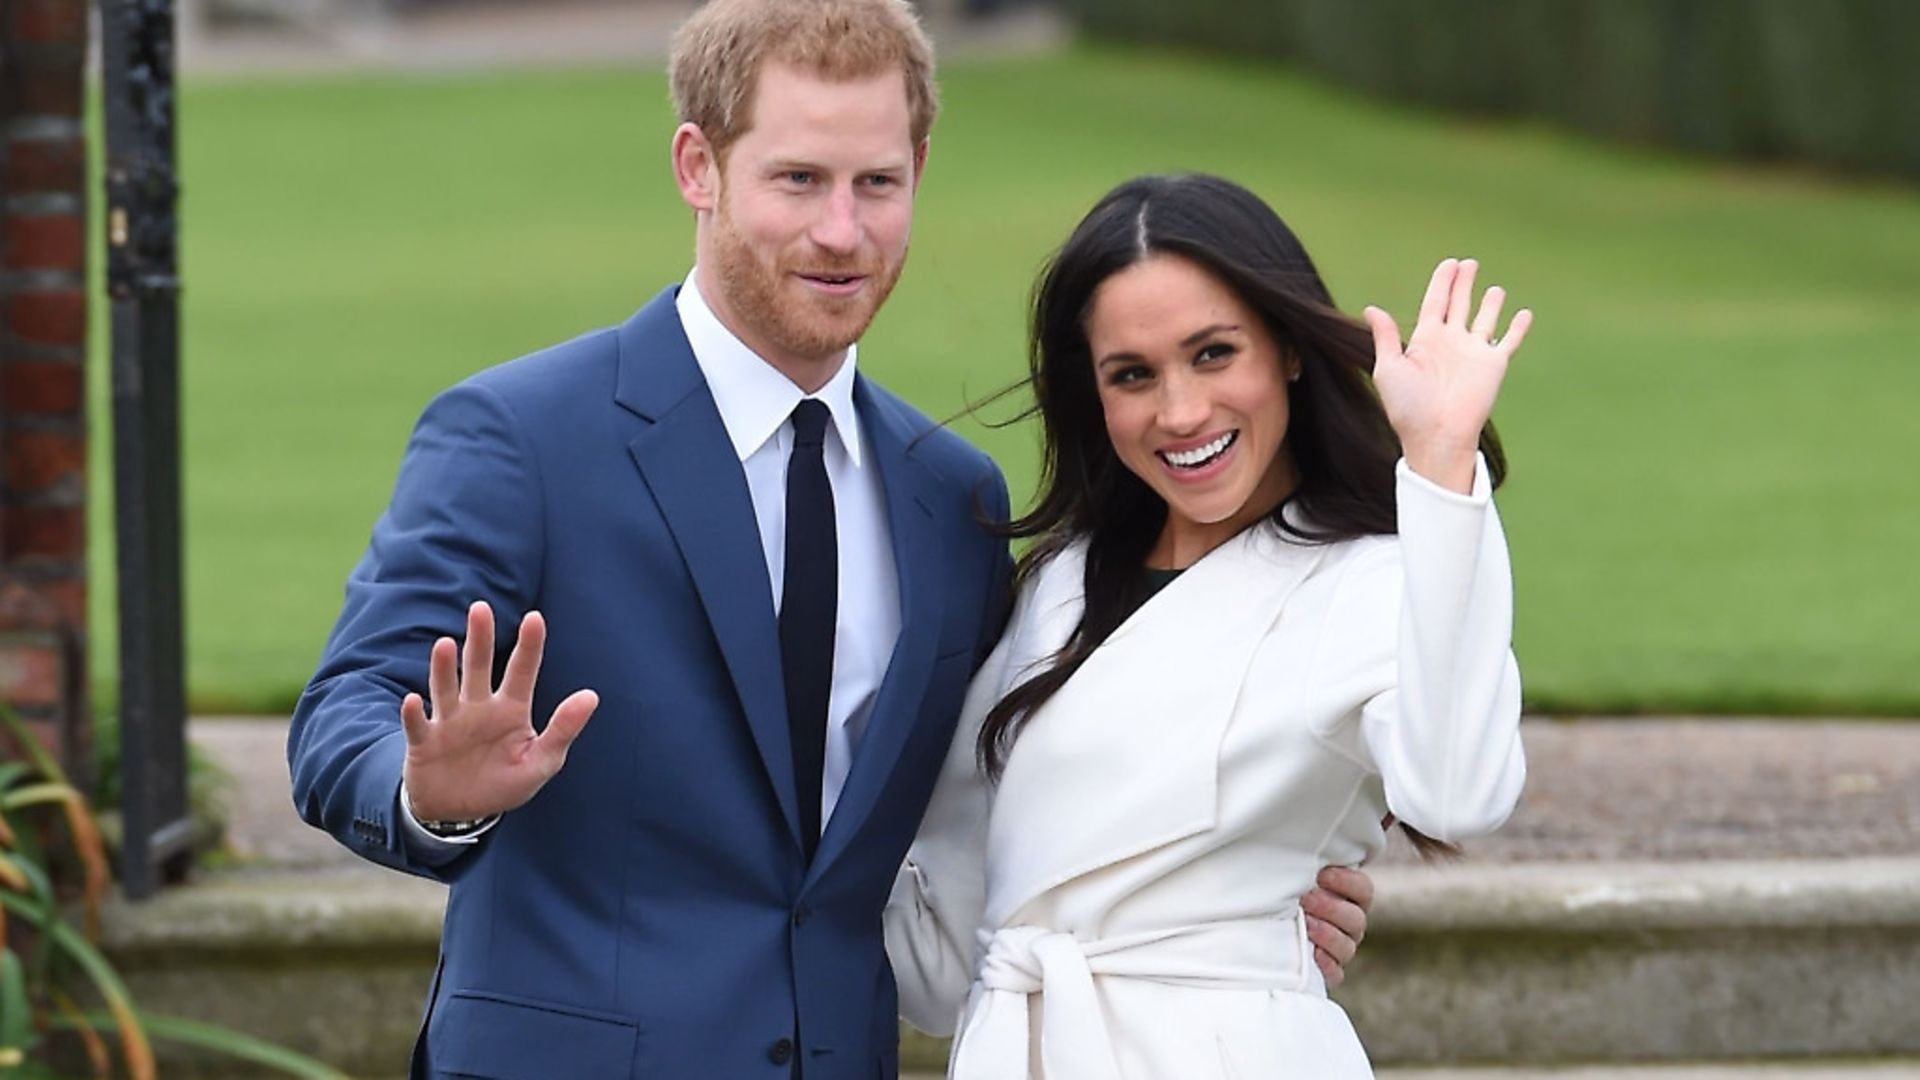 Prince Harry and Meghan Markle in the Sunken Garden at Kensington Palace, London, after the announcement of their engagement. Picture: PA - Credit: PA Wire/PA Images